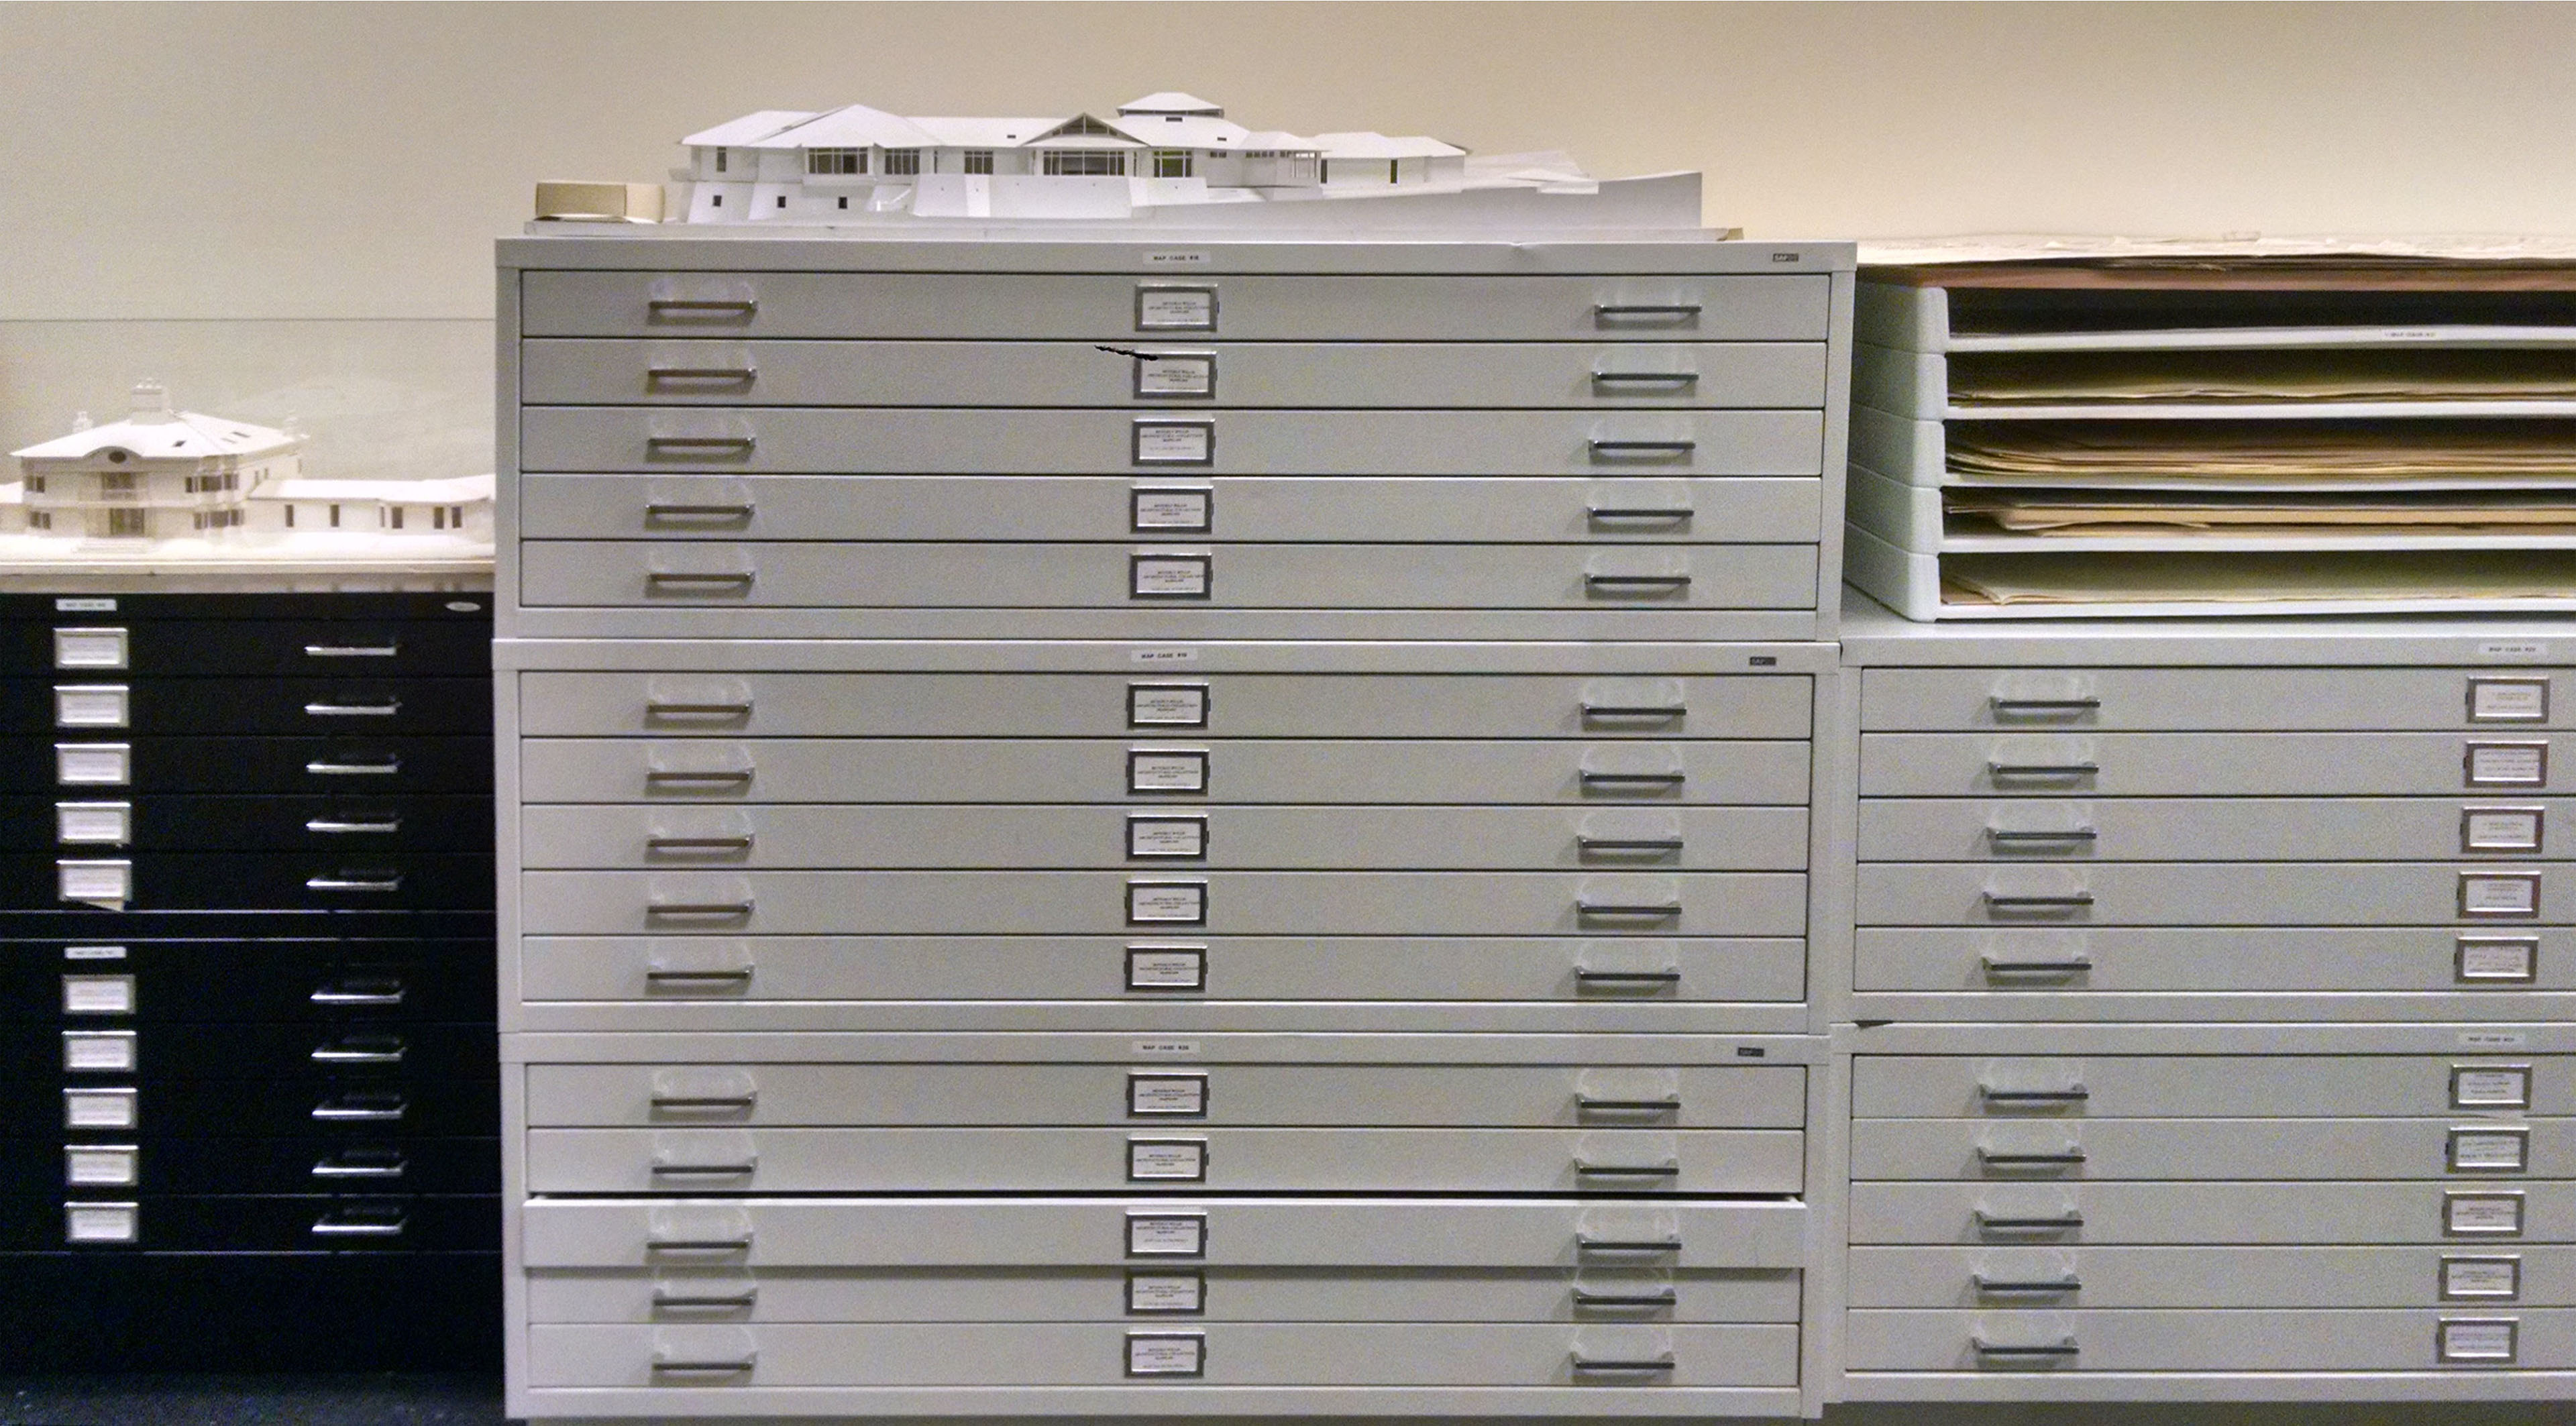 Three ranges of map cases for storing flat architectural drawings. Two architectural models are stored on top